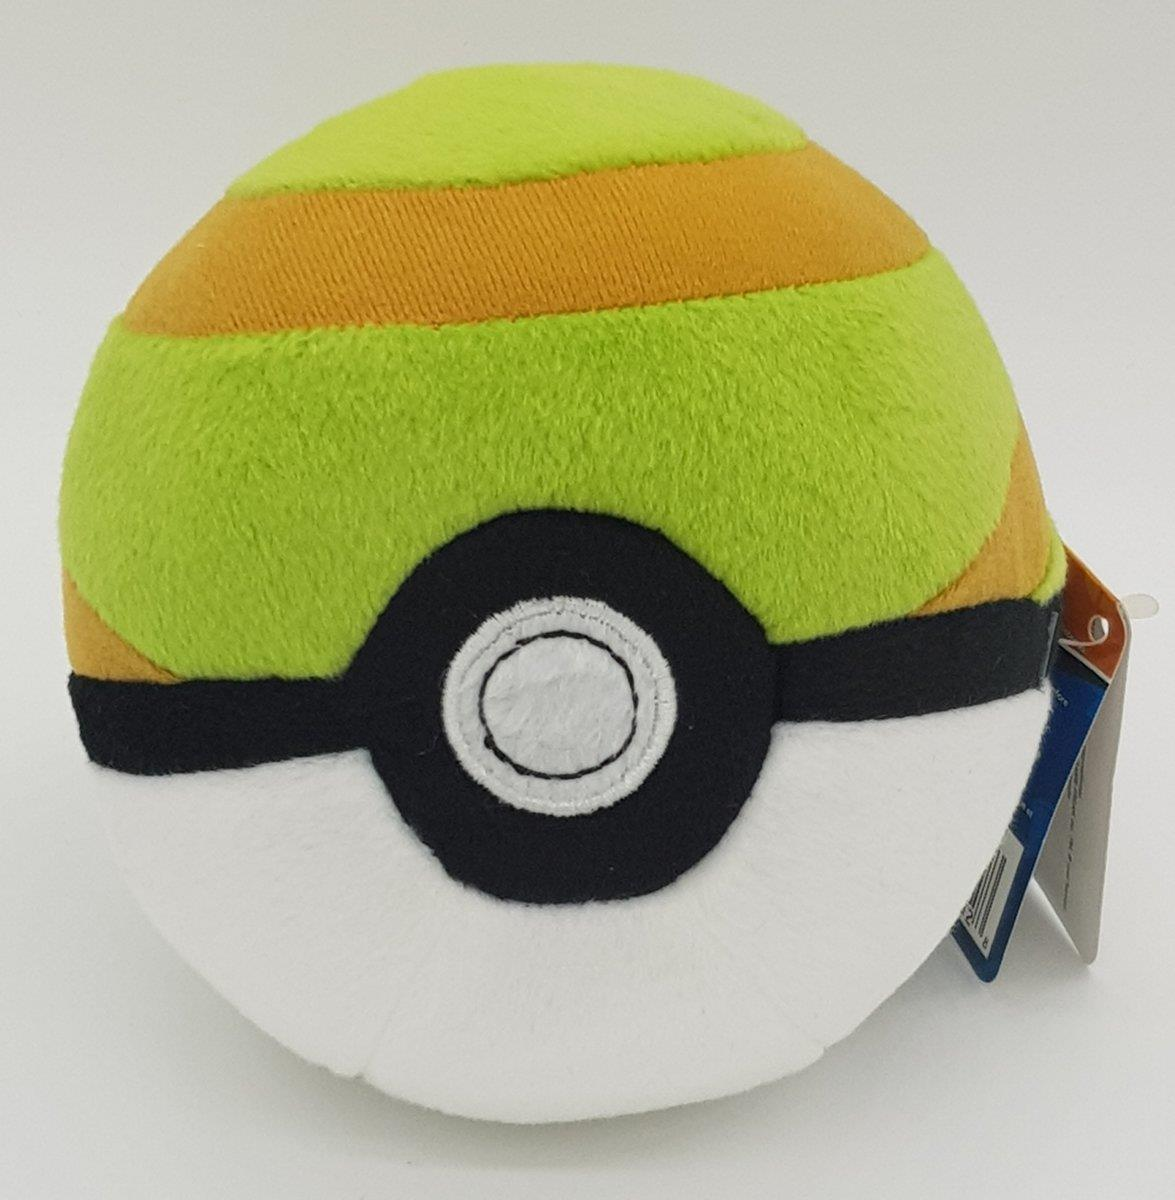 TOMY Pokémon Plüsch Pokéball Nest Ball